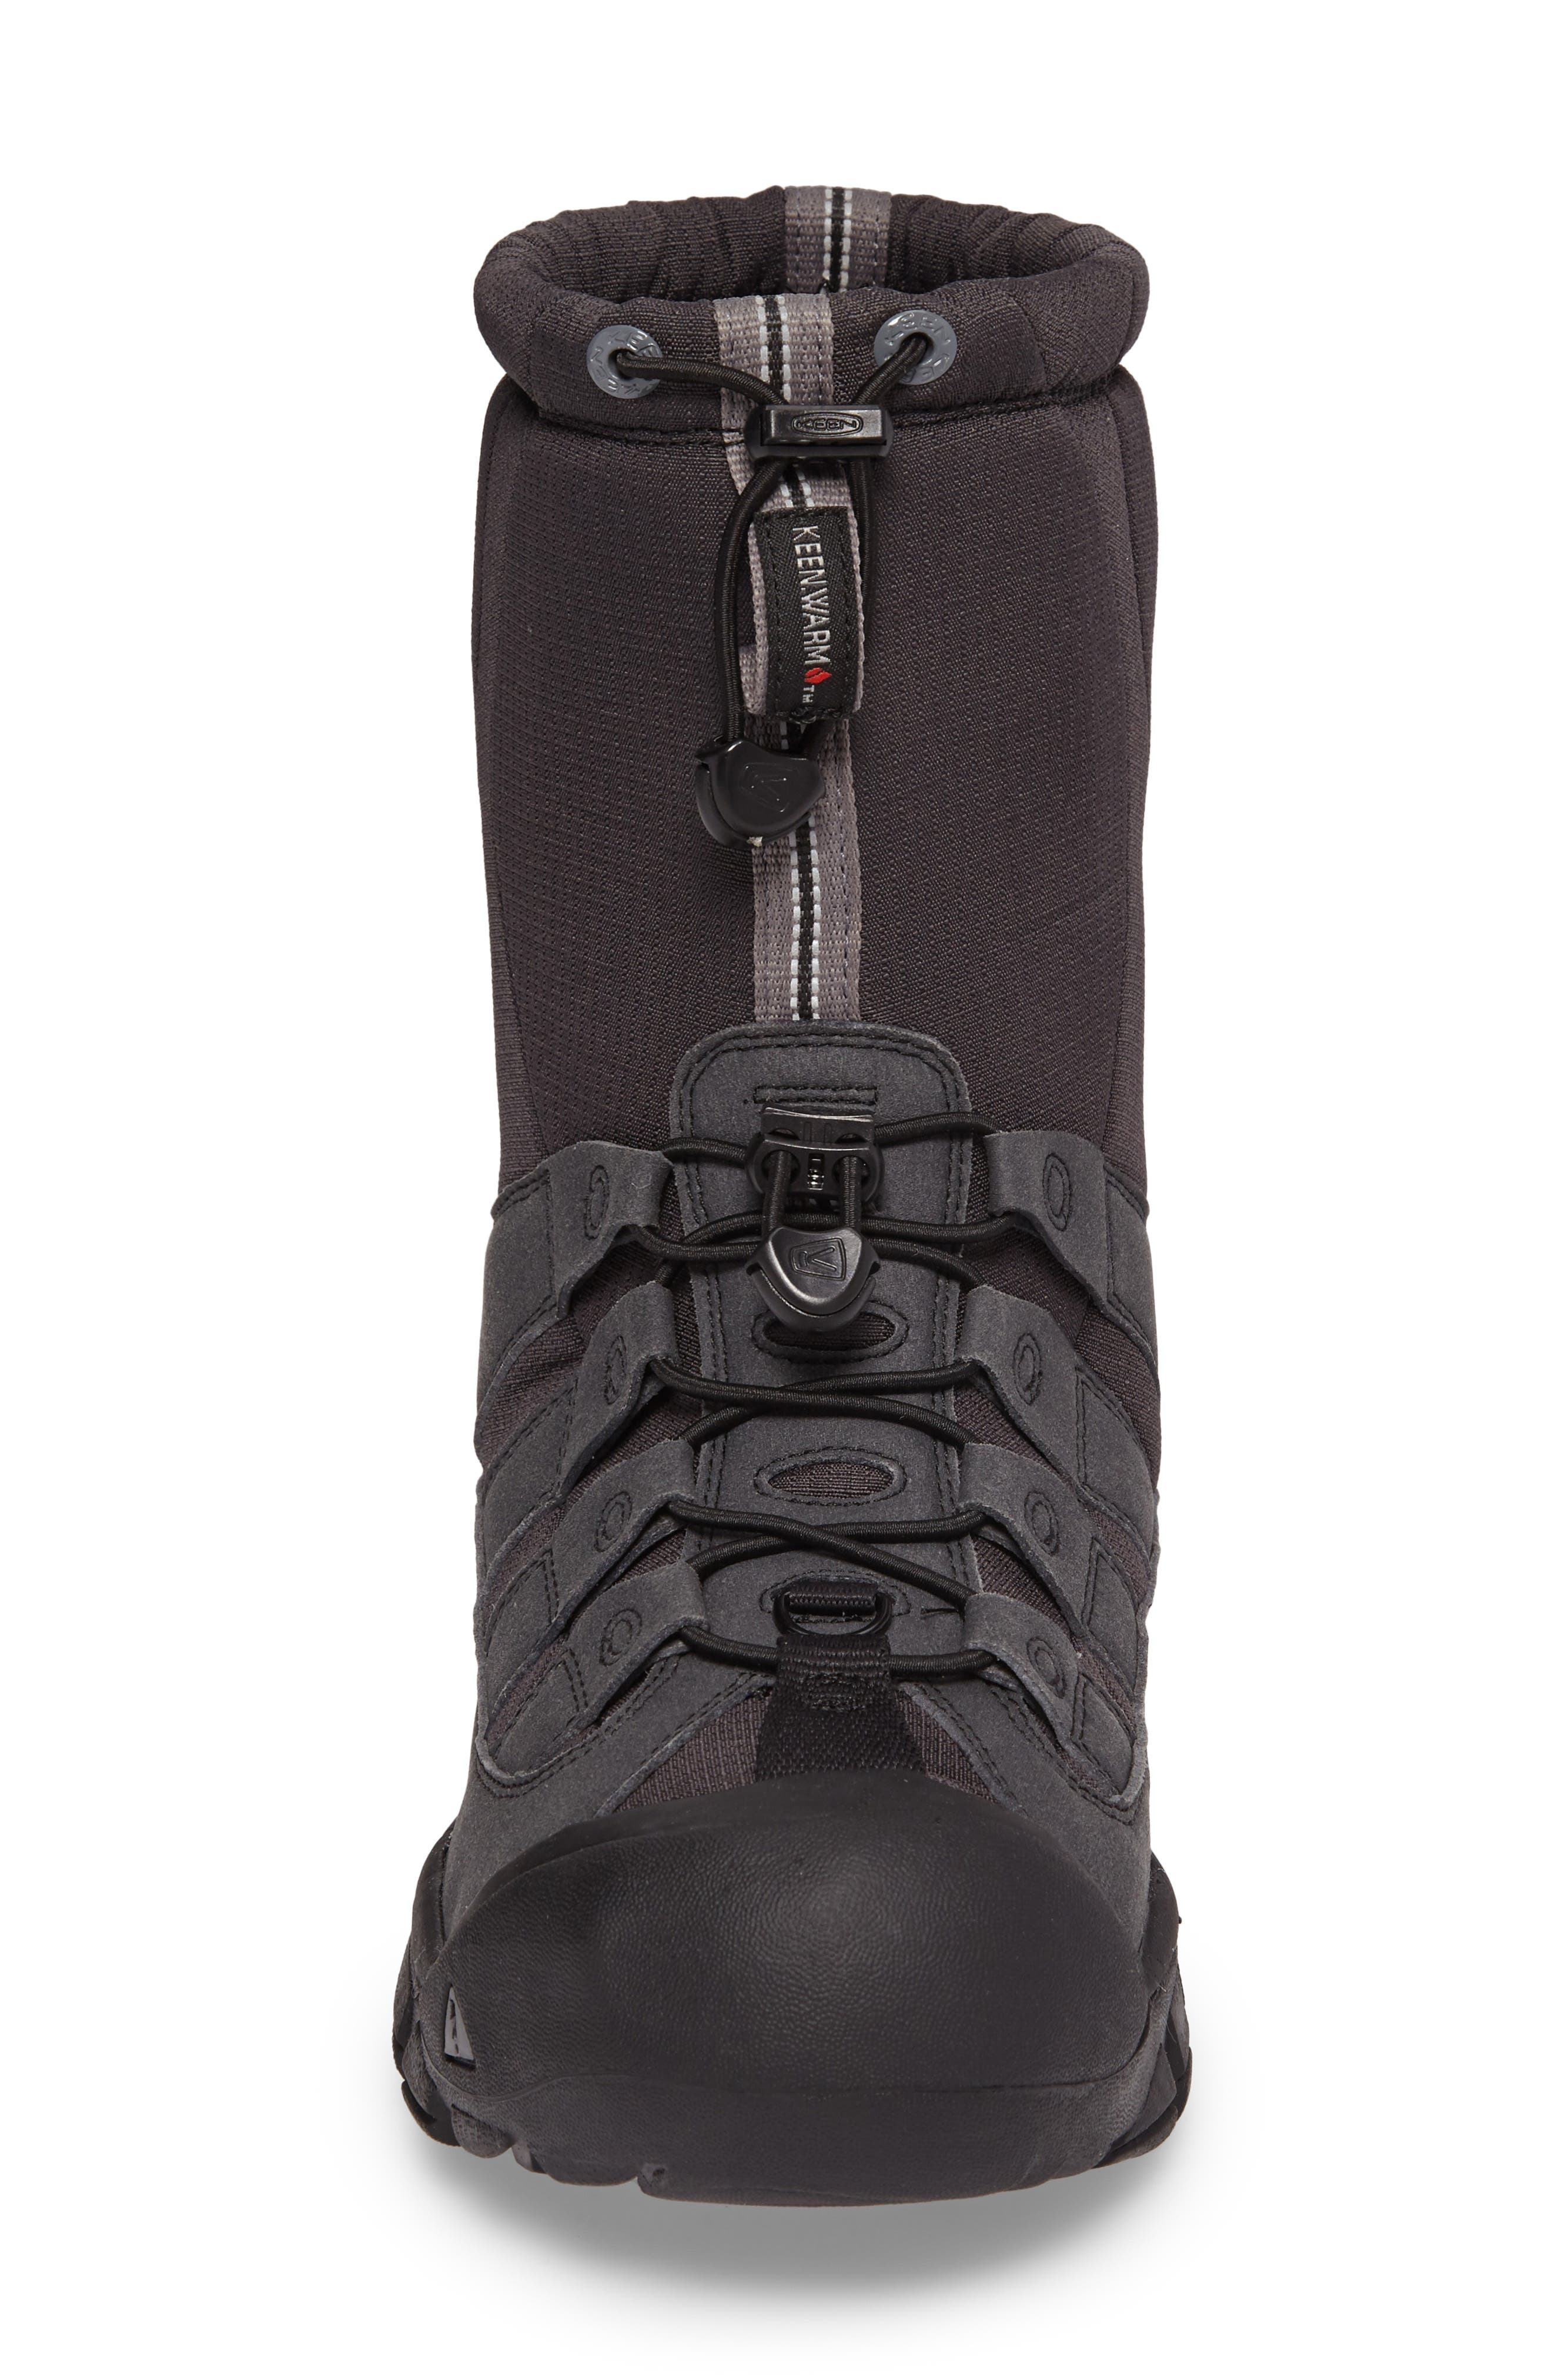 Winterport II Waterproof Insulated Snow Boot,                             Alternate thumbnail 4, color,                             Black/ Frost Gray